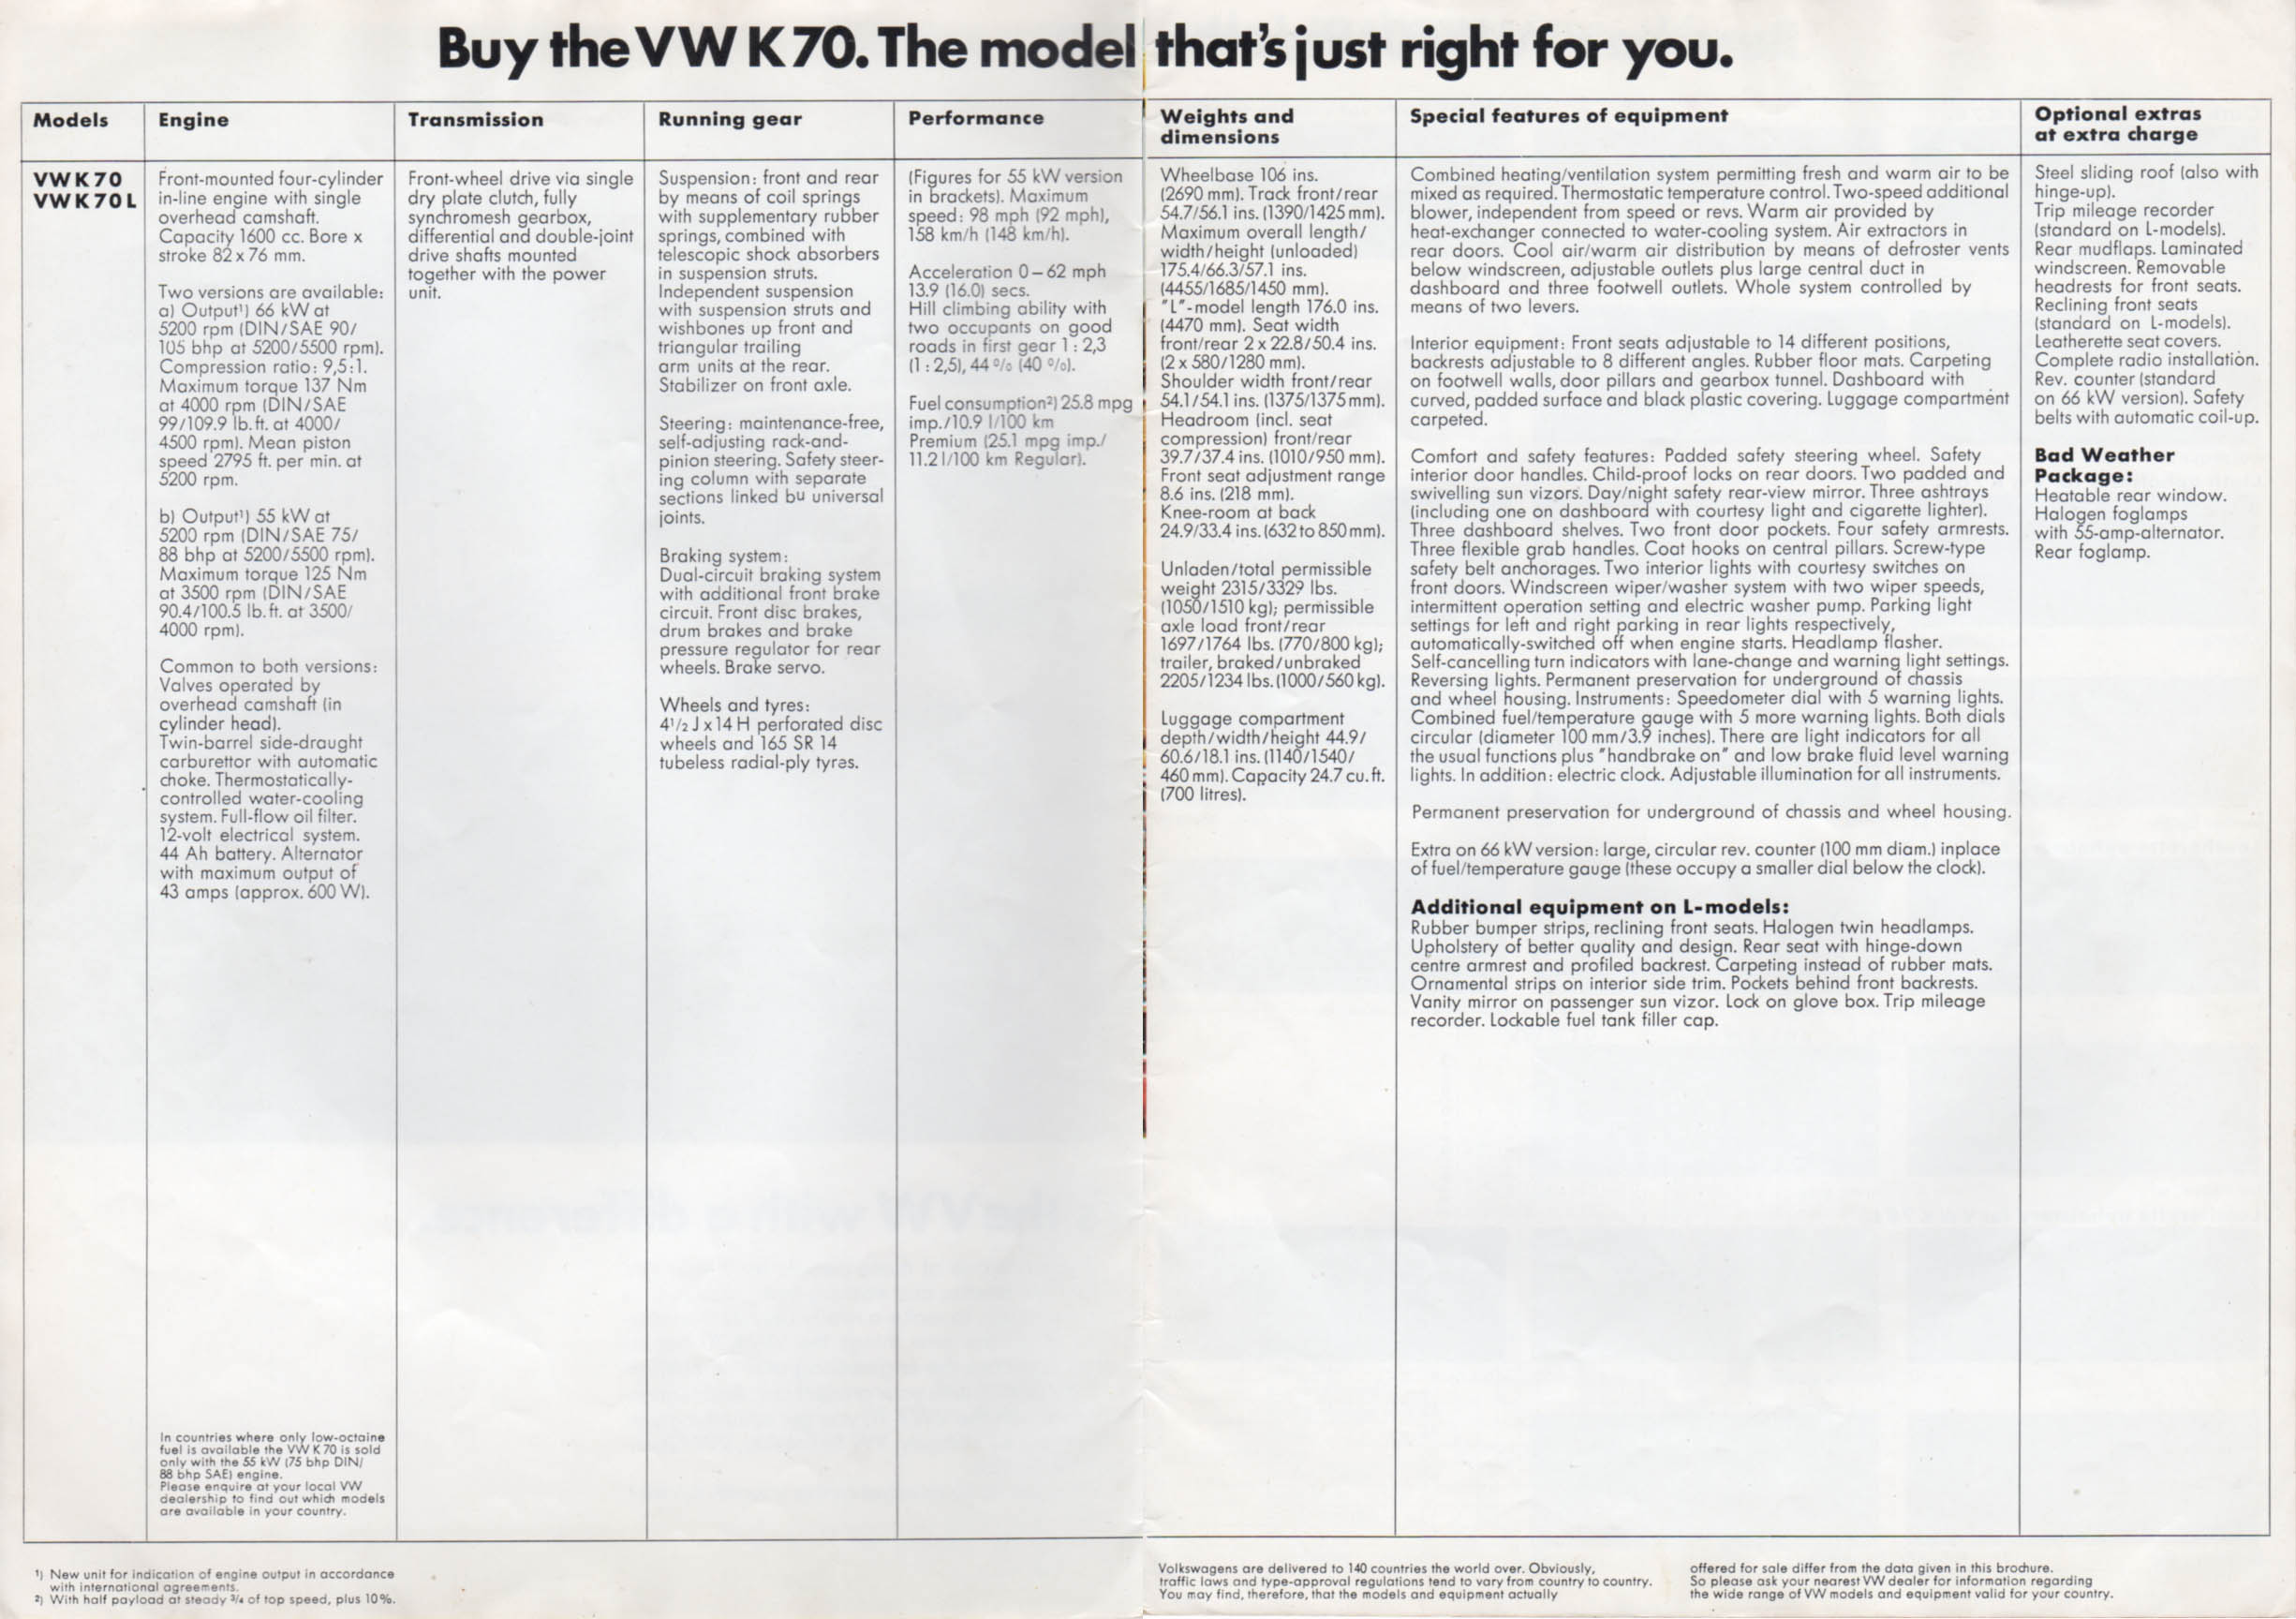 Vw Archives 1973 K70 Brochure Acts As An Output Of The Circuit Click To View Fullsize Picture On Any Image See It Full Size